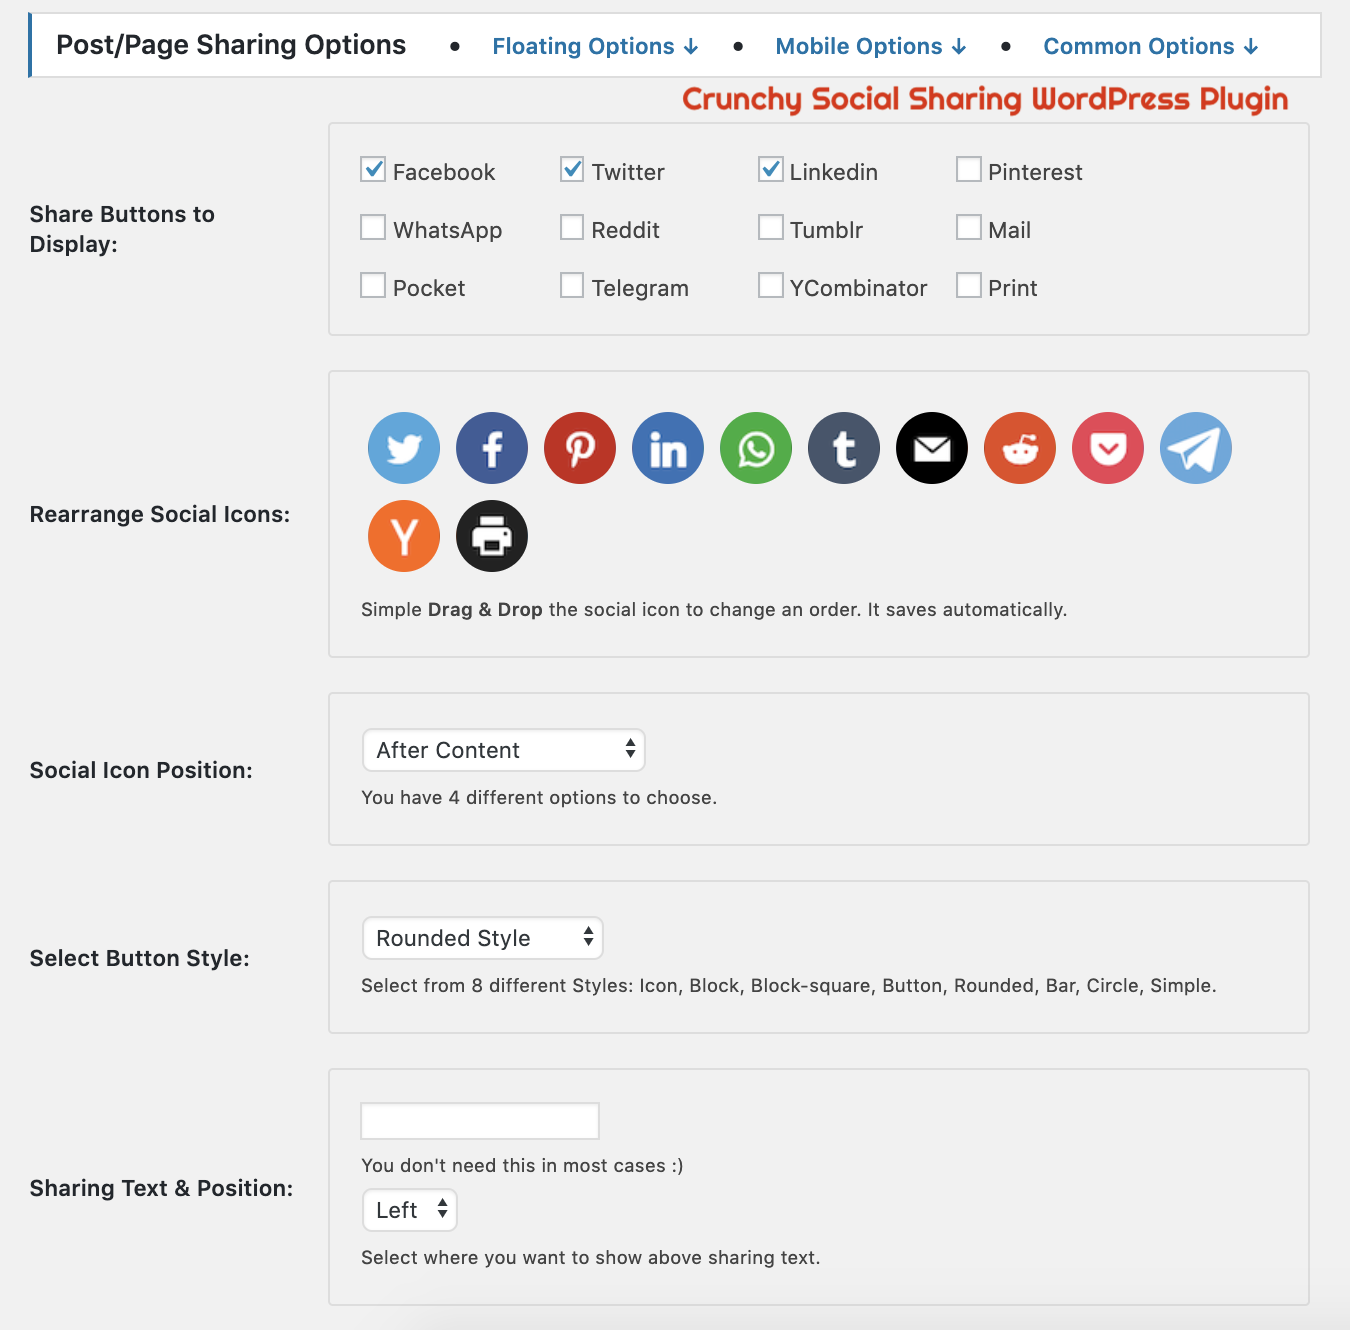 Crunchy Sharing WordPress Plugin - Post Page Sharing Admin Panel Options